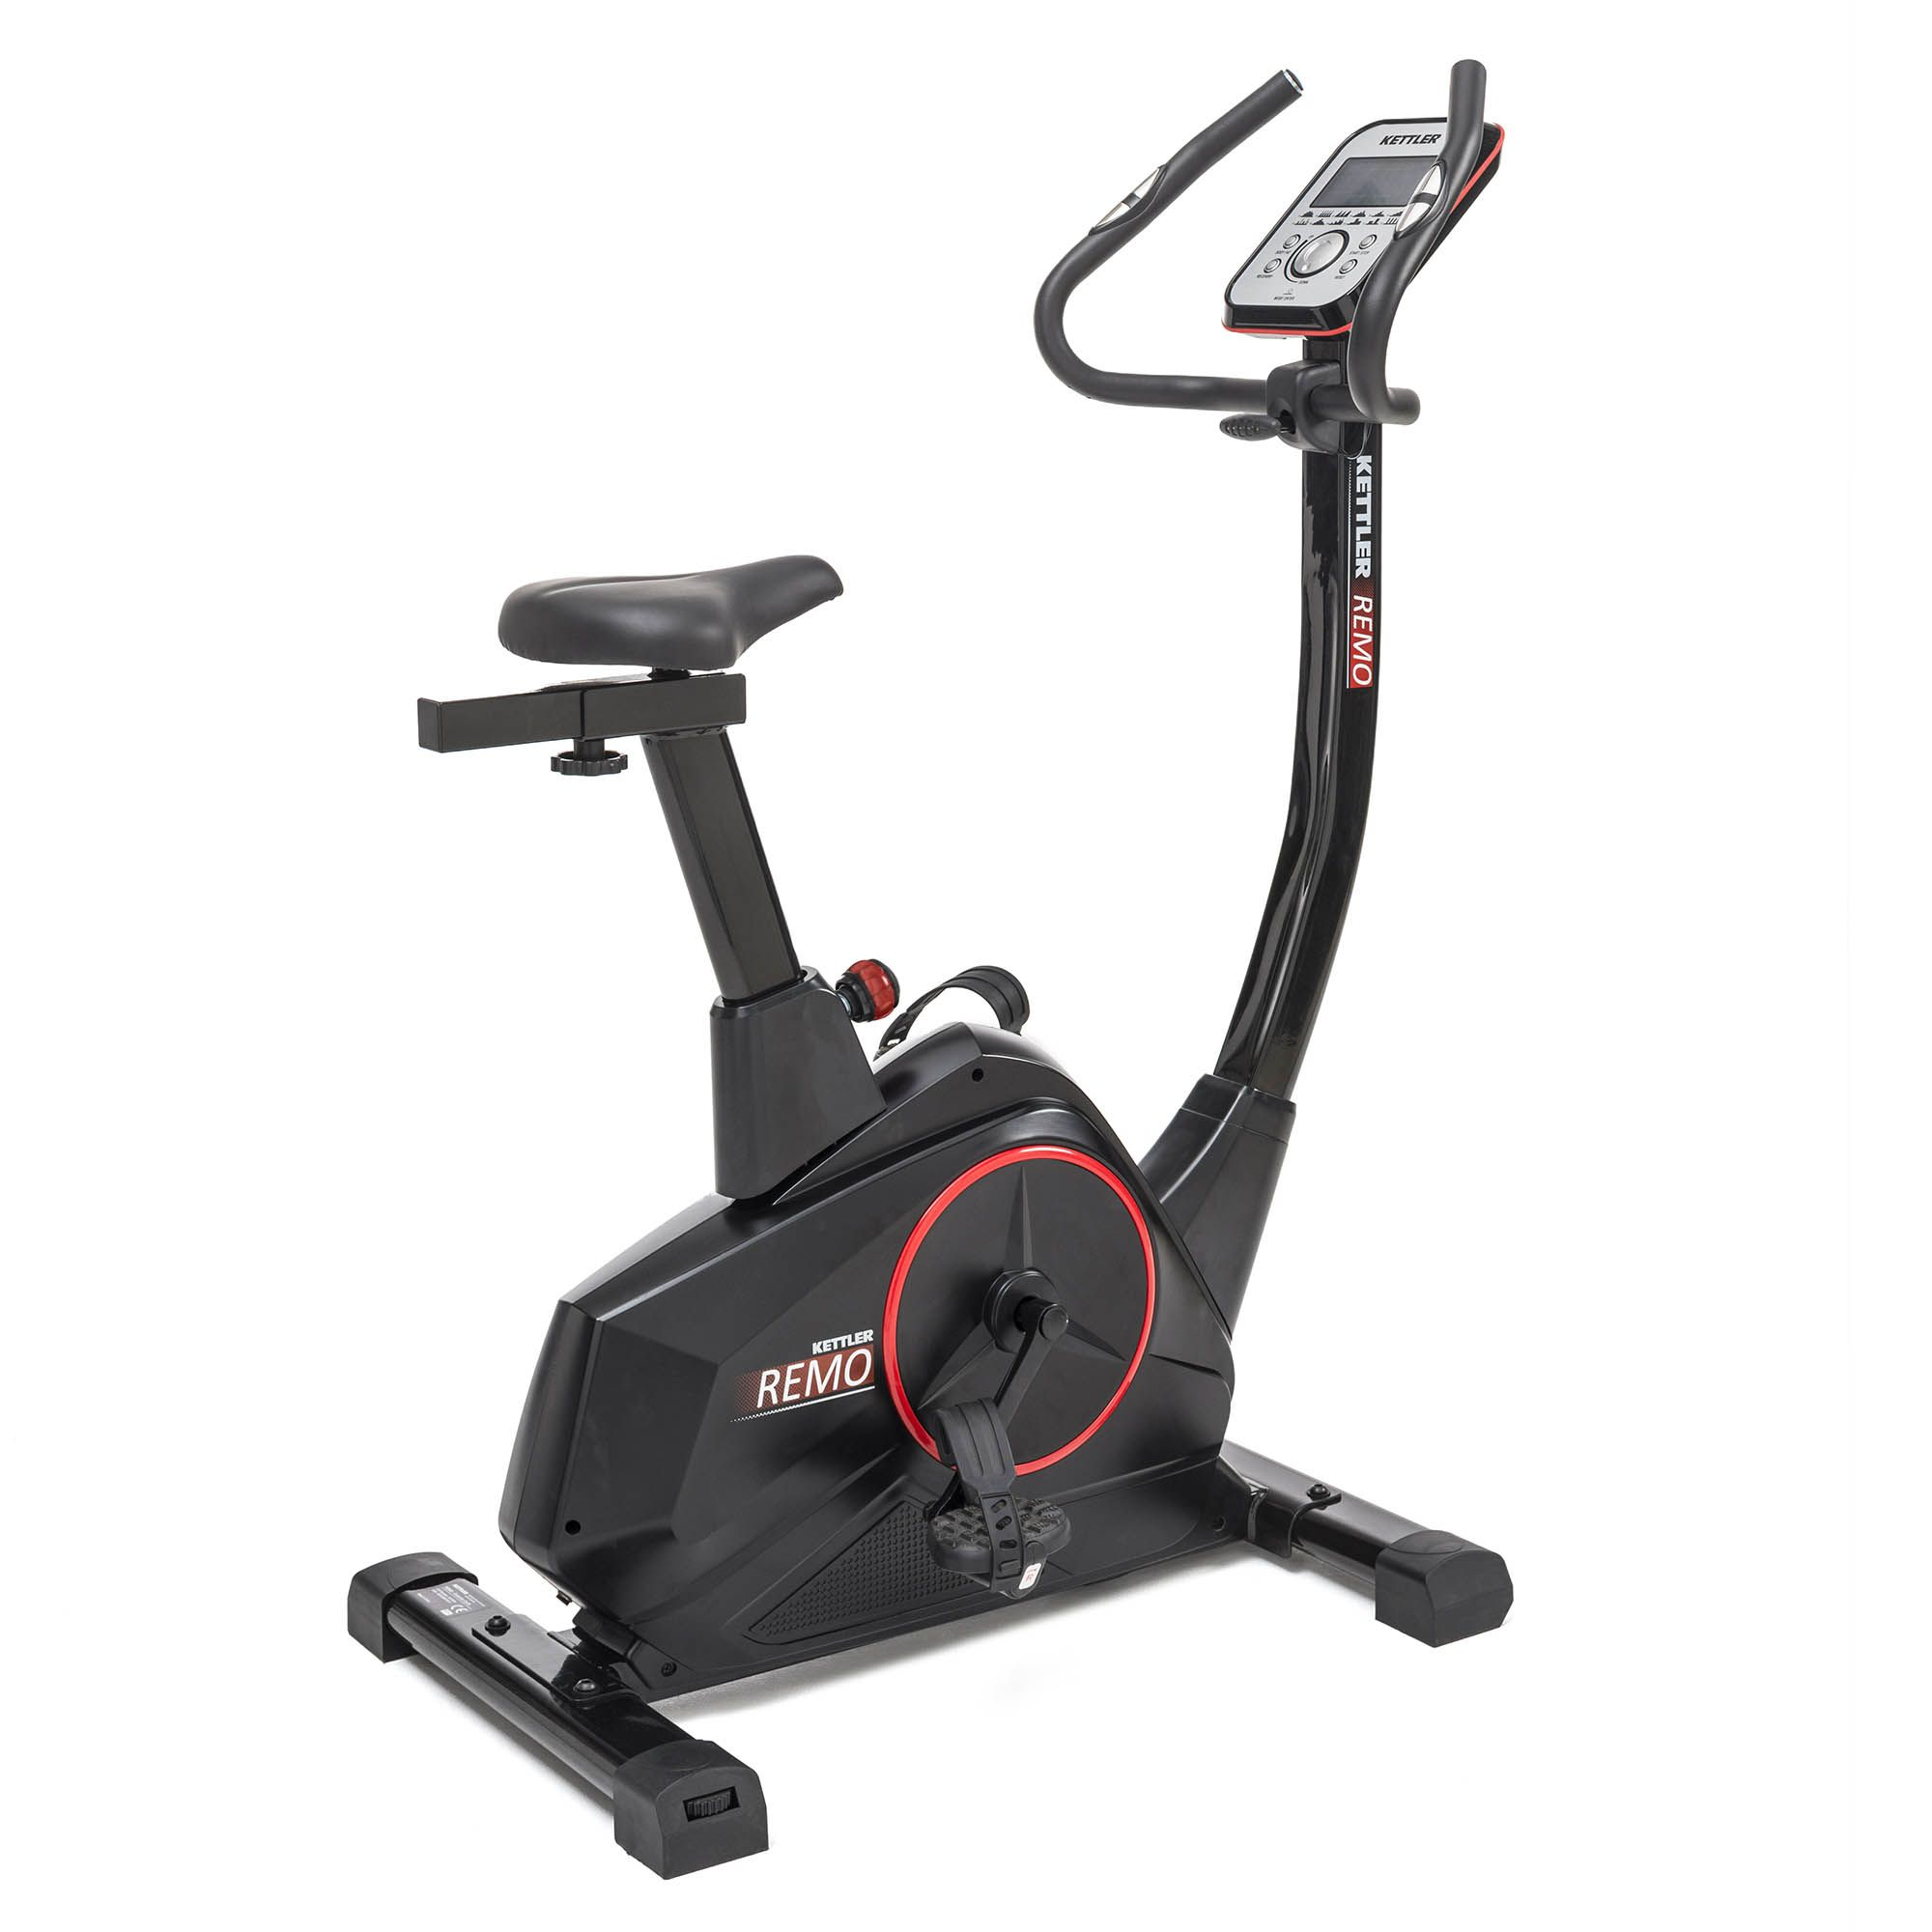 Kettler Fitness Kettler Remo Exercise Bike Sweatband